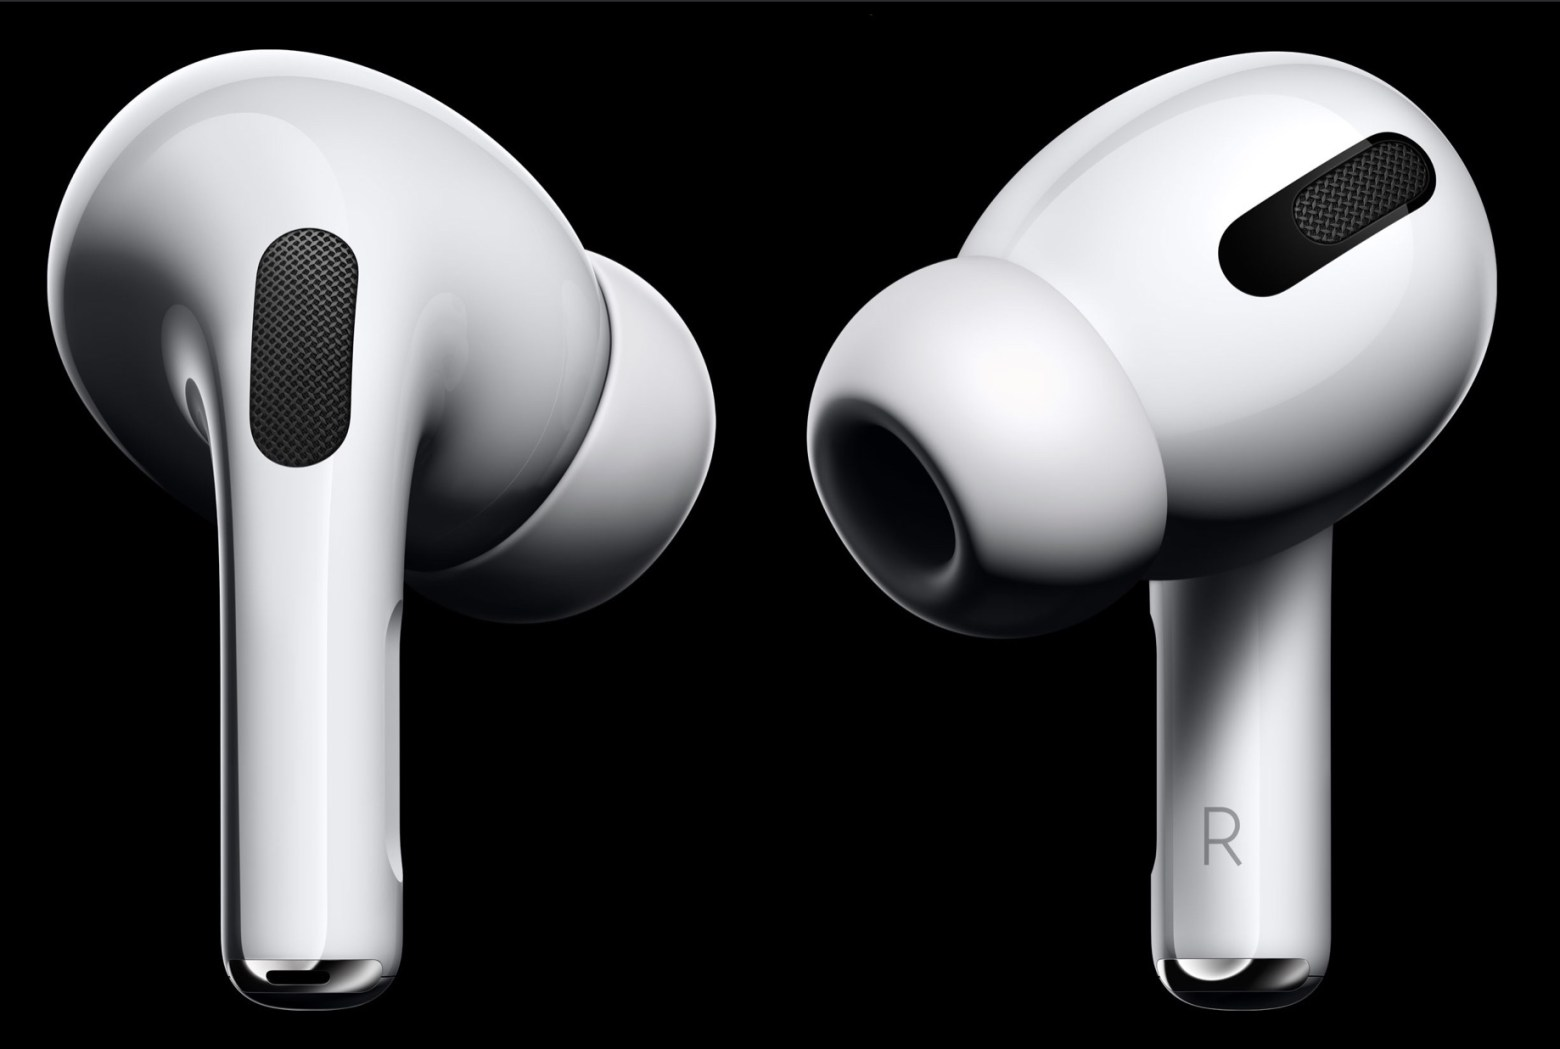 How to Enable AirPods Pro Noise Cancellation & Transparency Modes